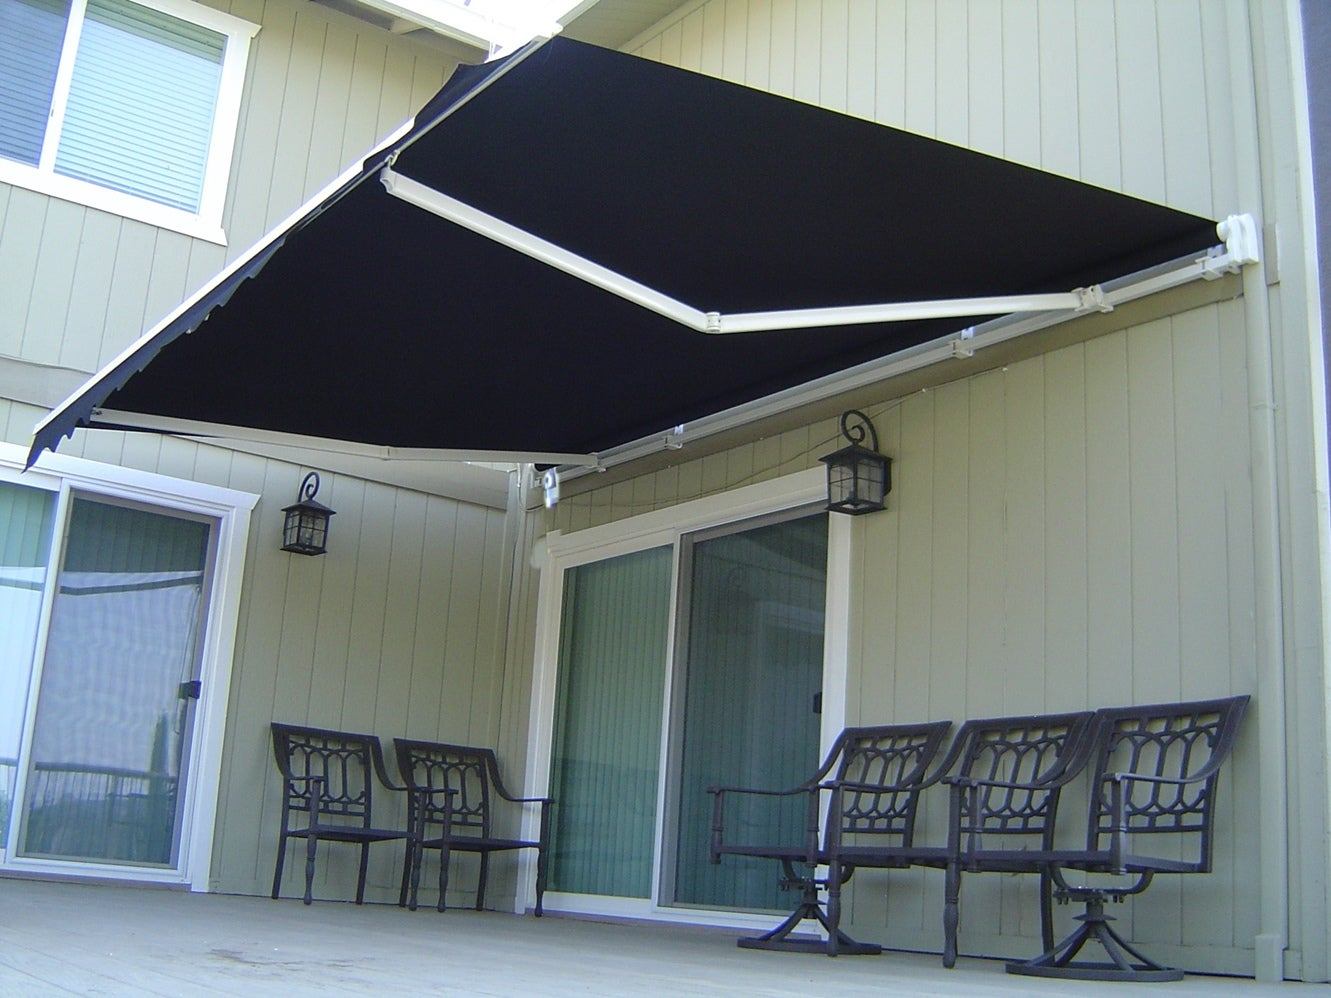 half off ddc8c a3187 Outdoor Awnings | Buy Retractable & Folding Outdoor Awnings ...